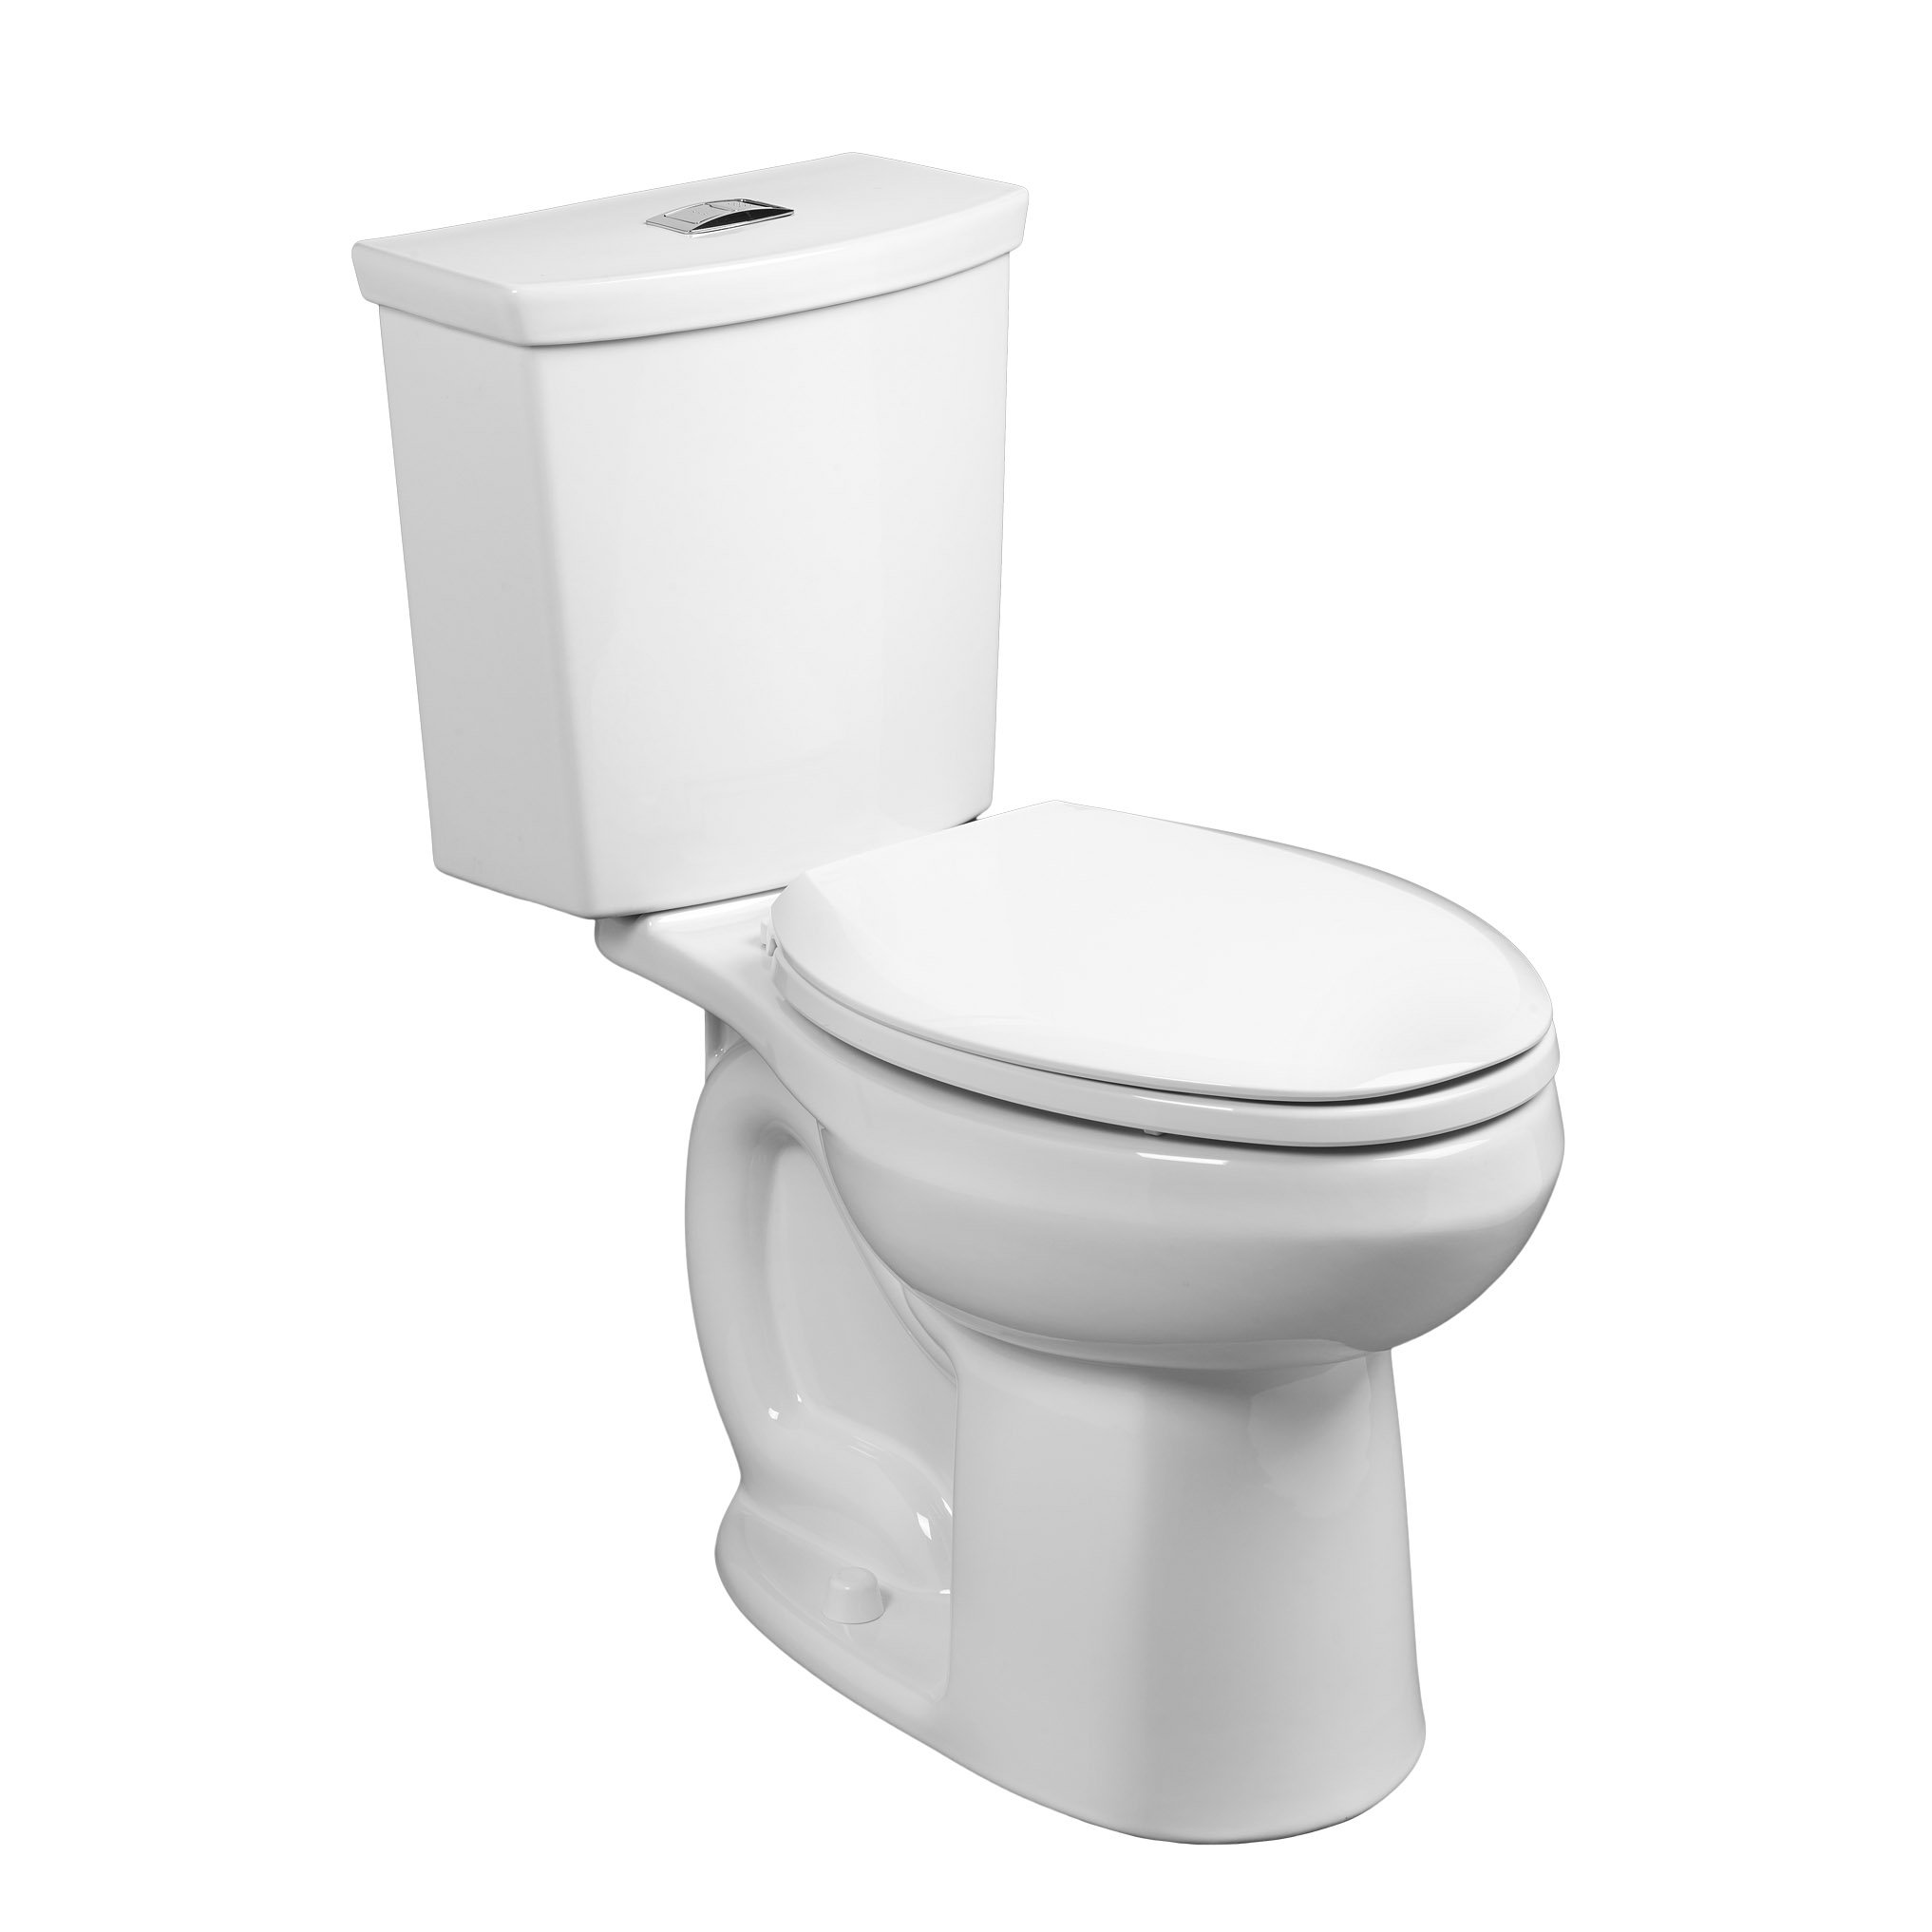 American Standard 2886518.020 H2Option Siphonic Dual Flush Right Height Elongated Toilet with Liner, White, 2-Piece by American Standard